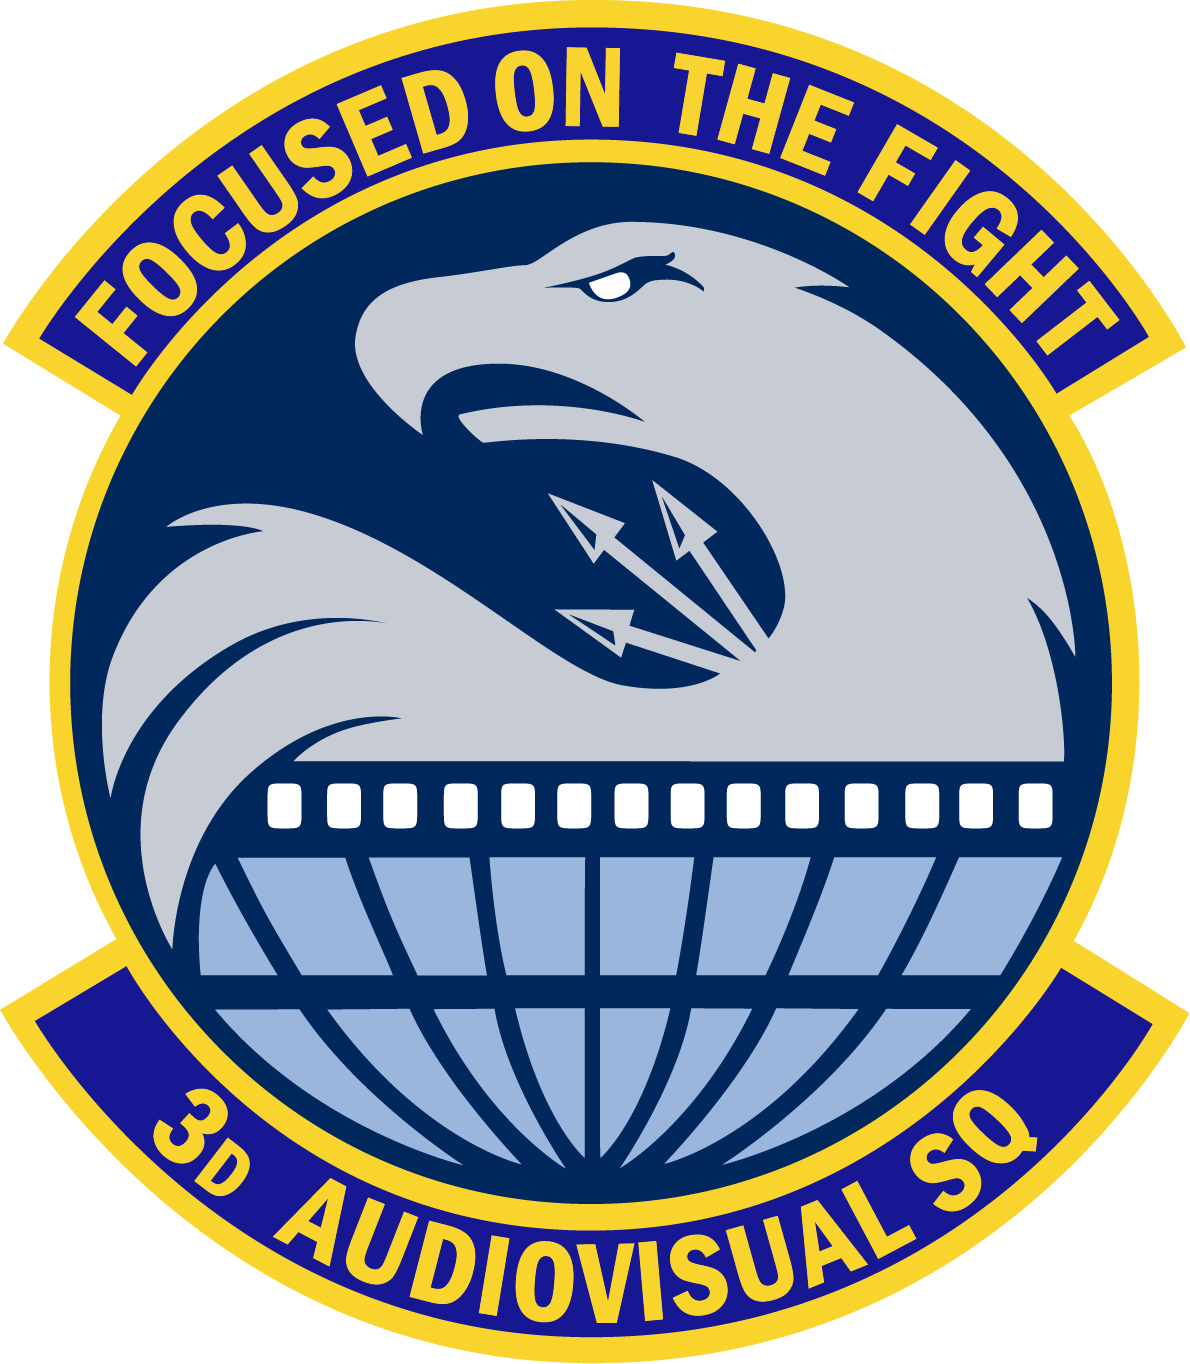 3rd Audiovisual Squadron patch